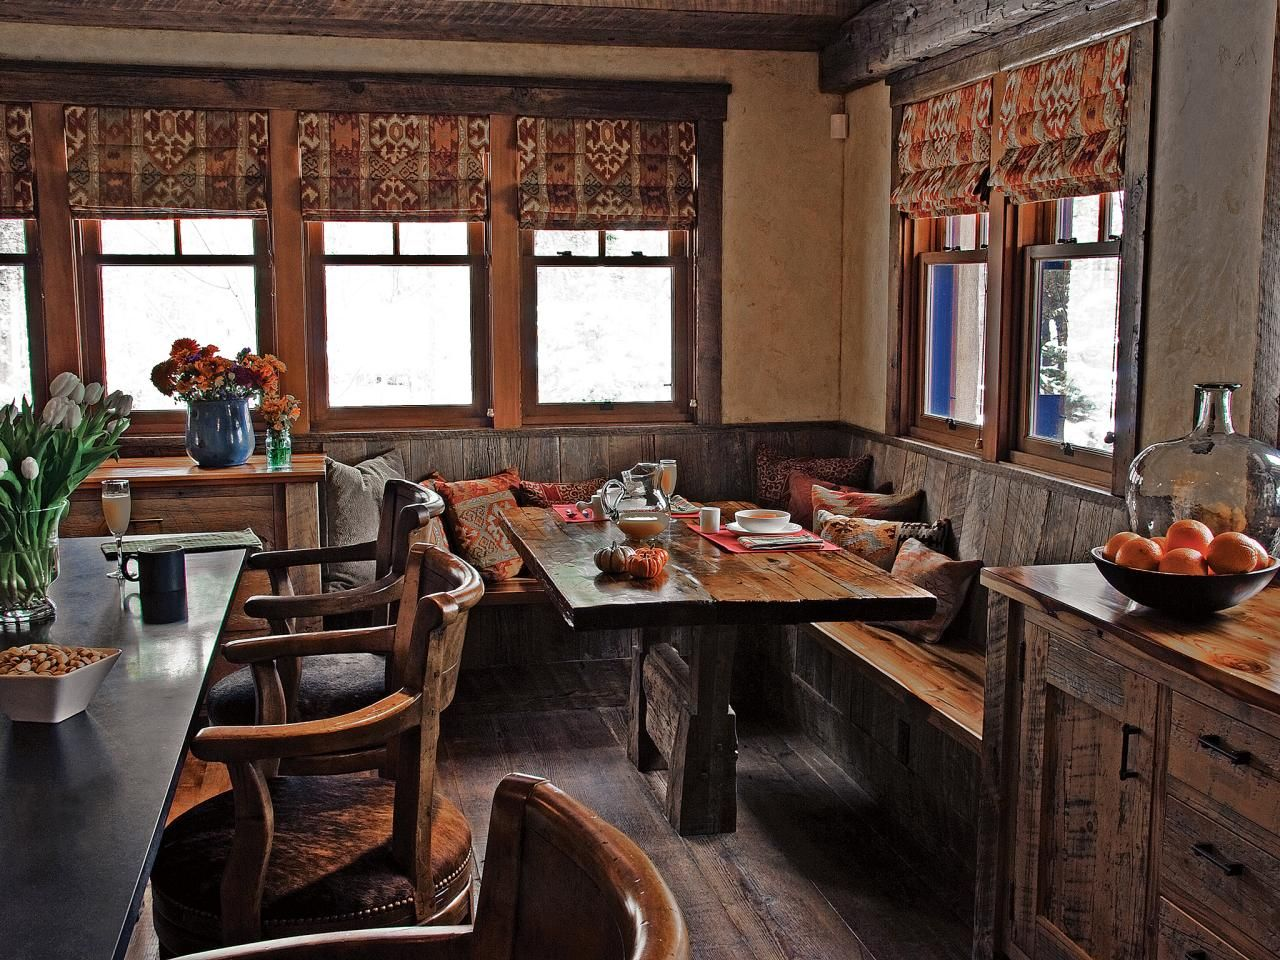 Cozy Rustic Kitchen This Cozy Rustic Kitchen Features A Small Breakfast Nook Made Of